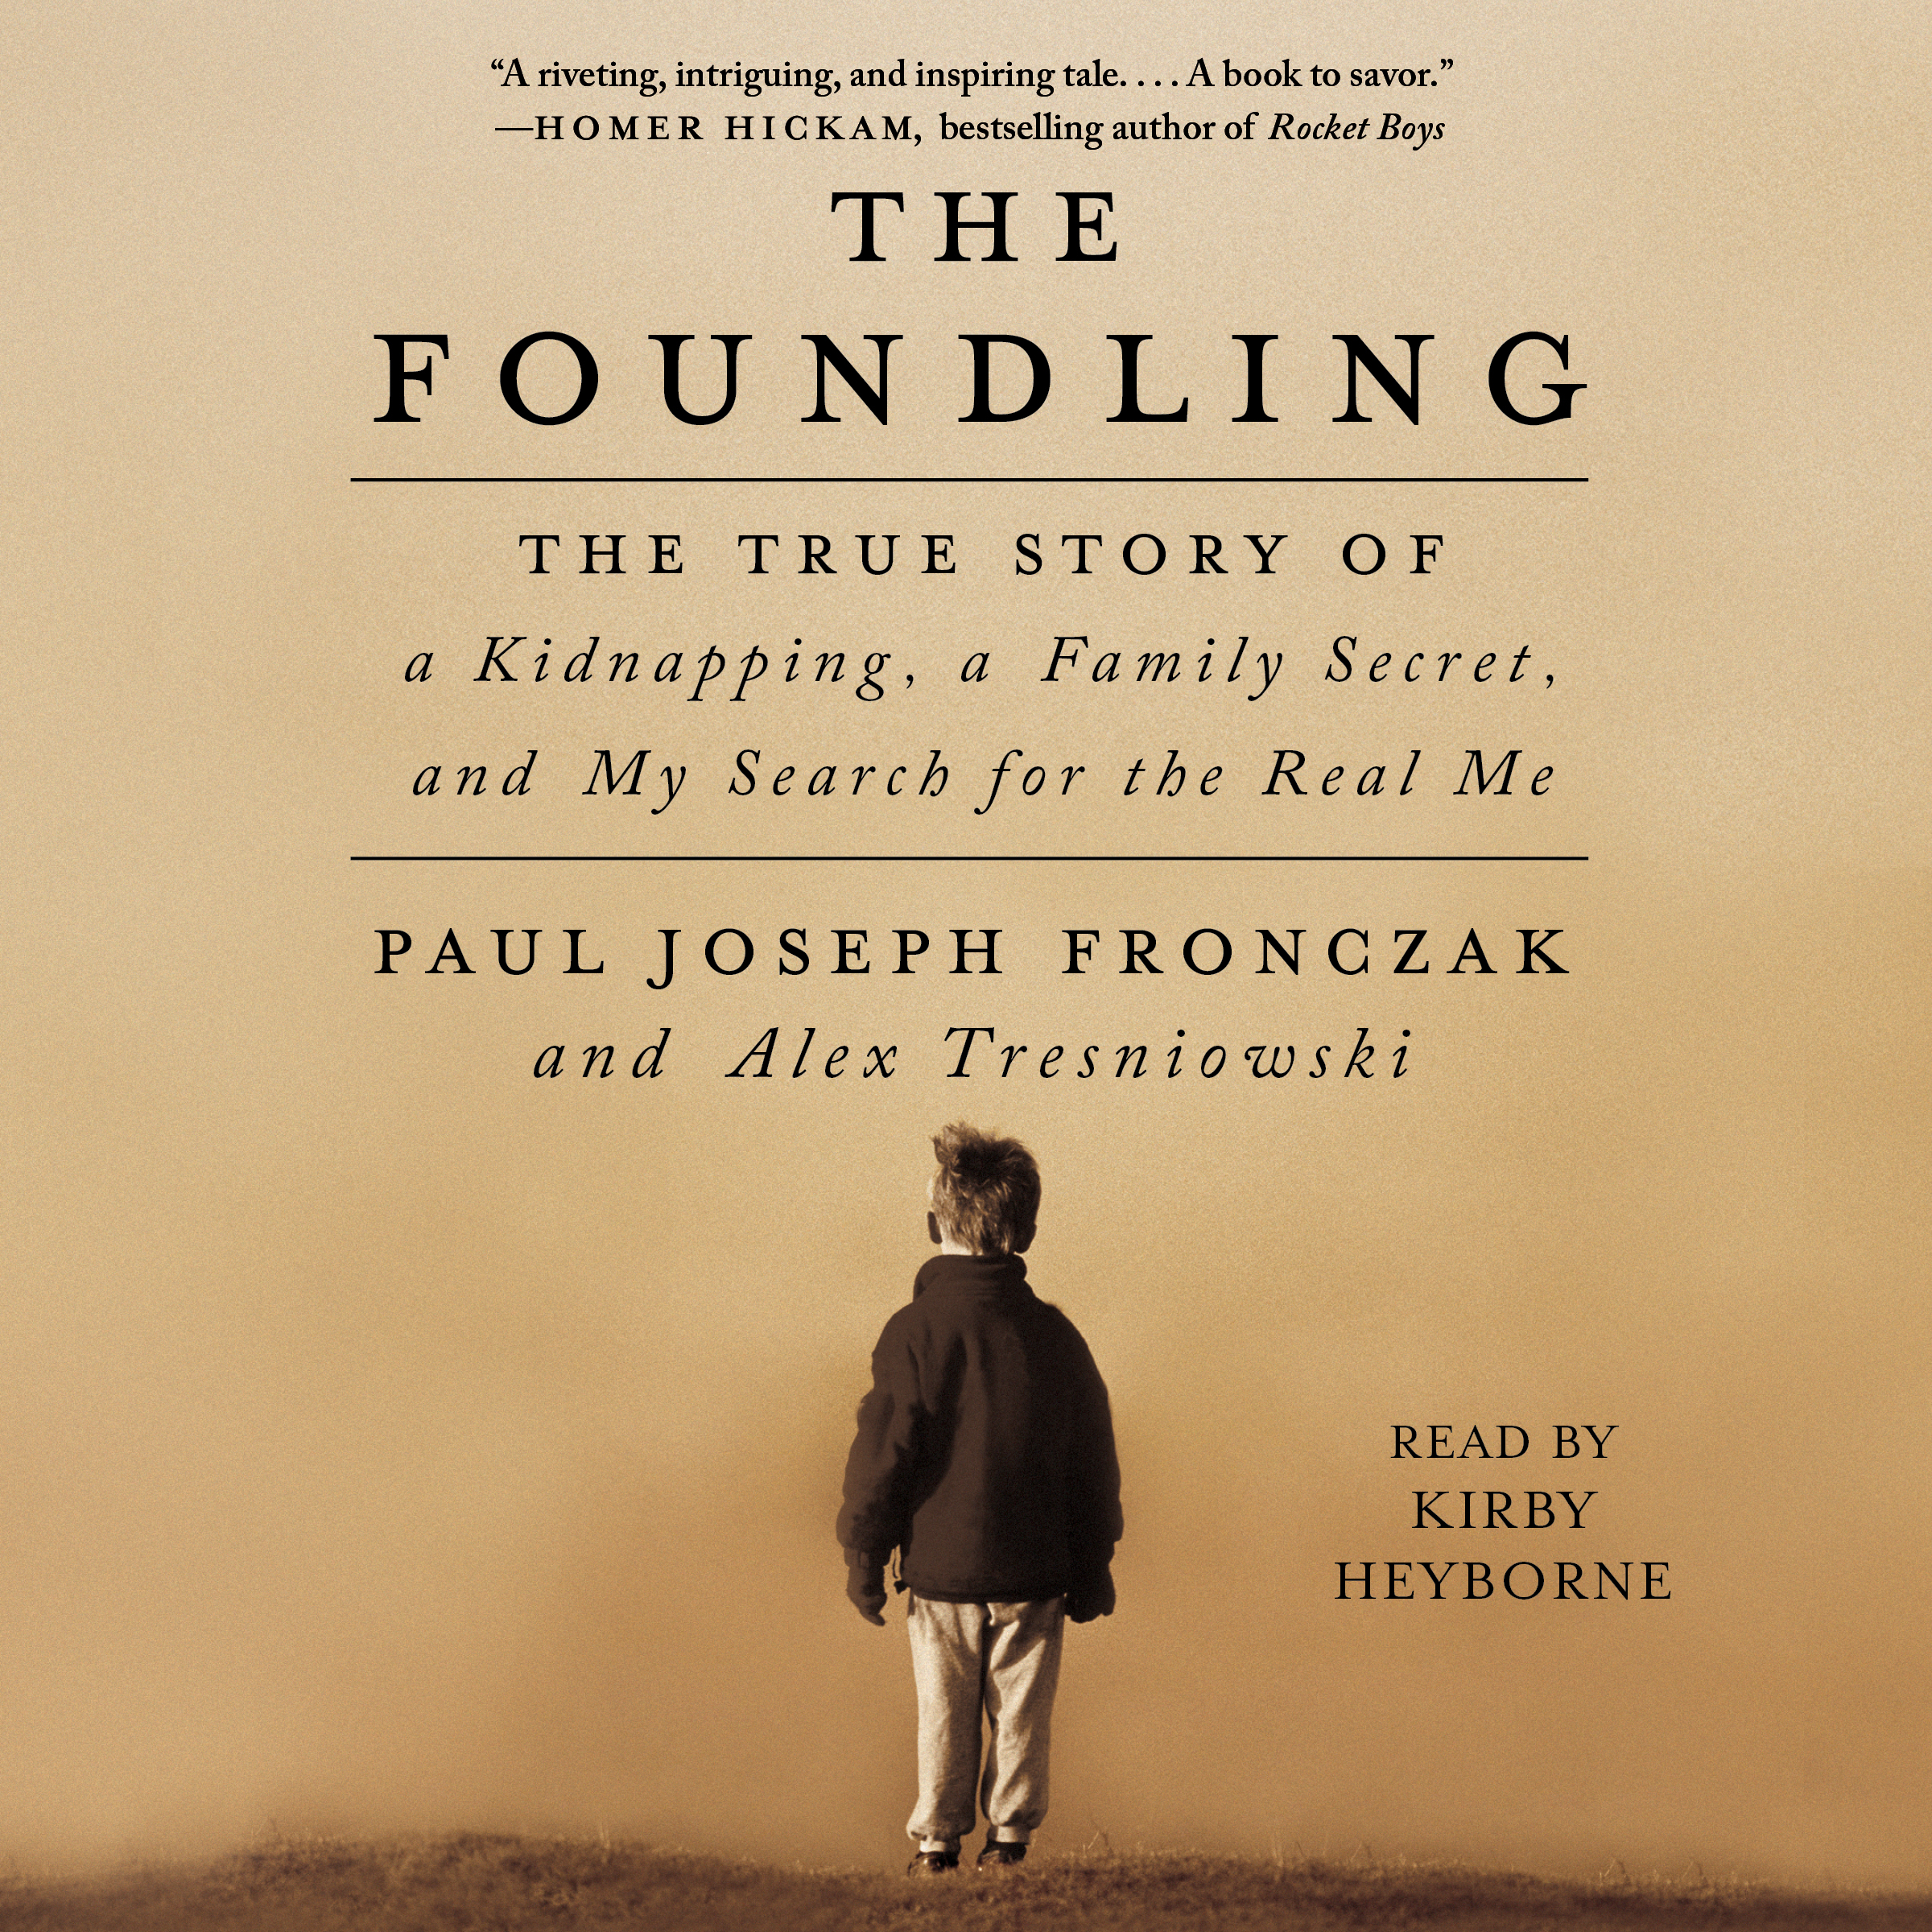 The foundling 9781508229254 hr